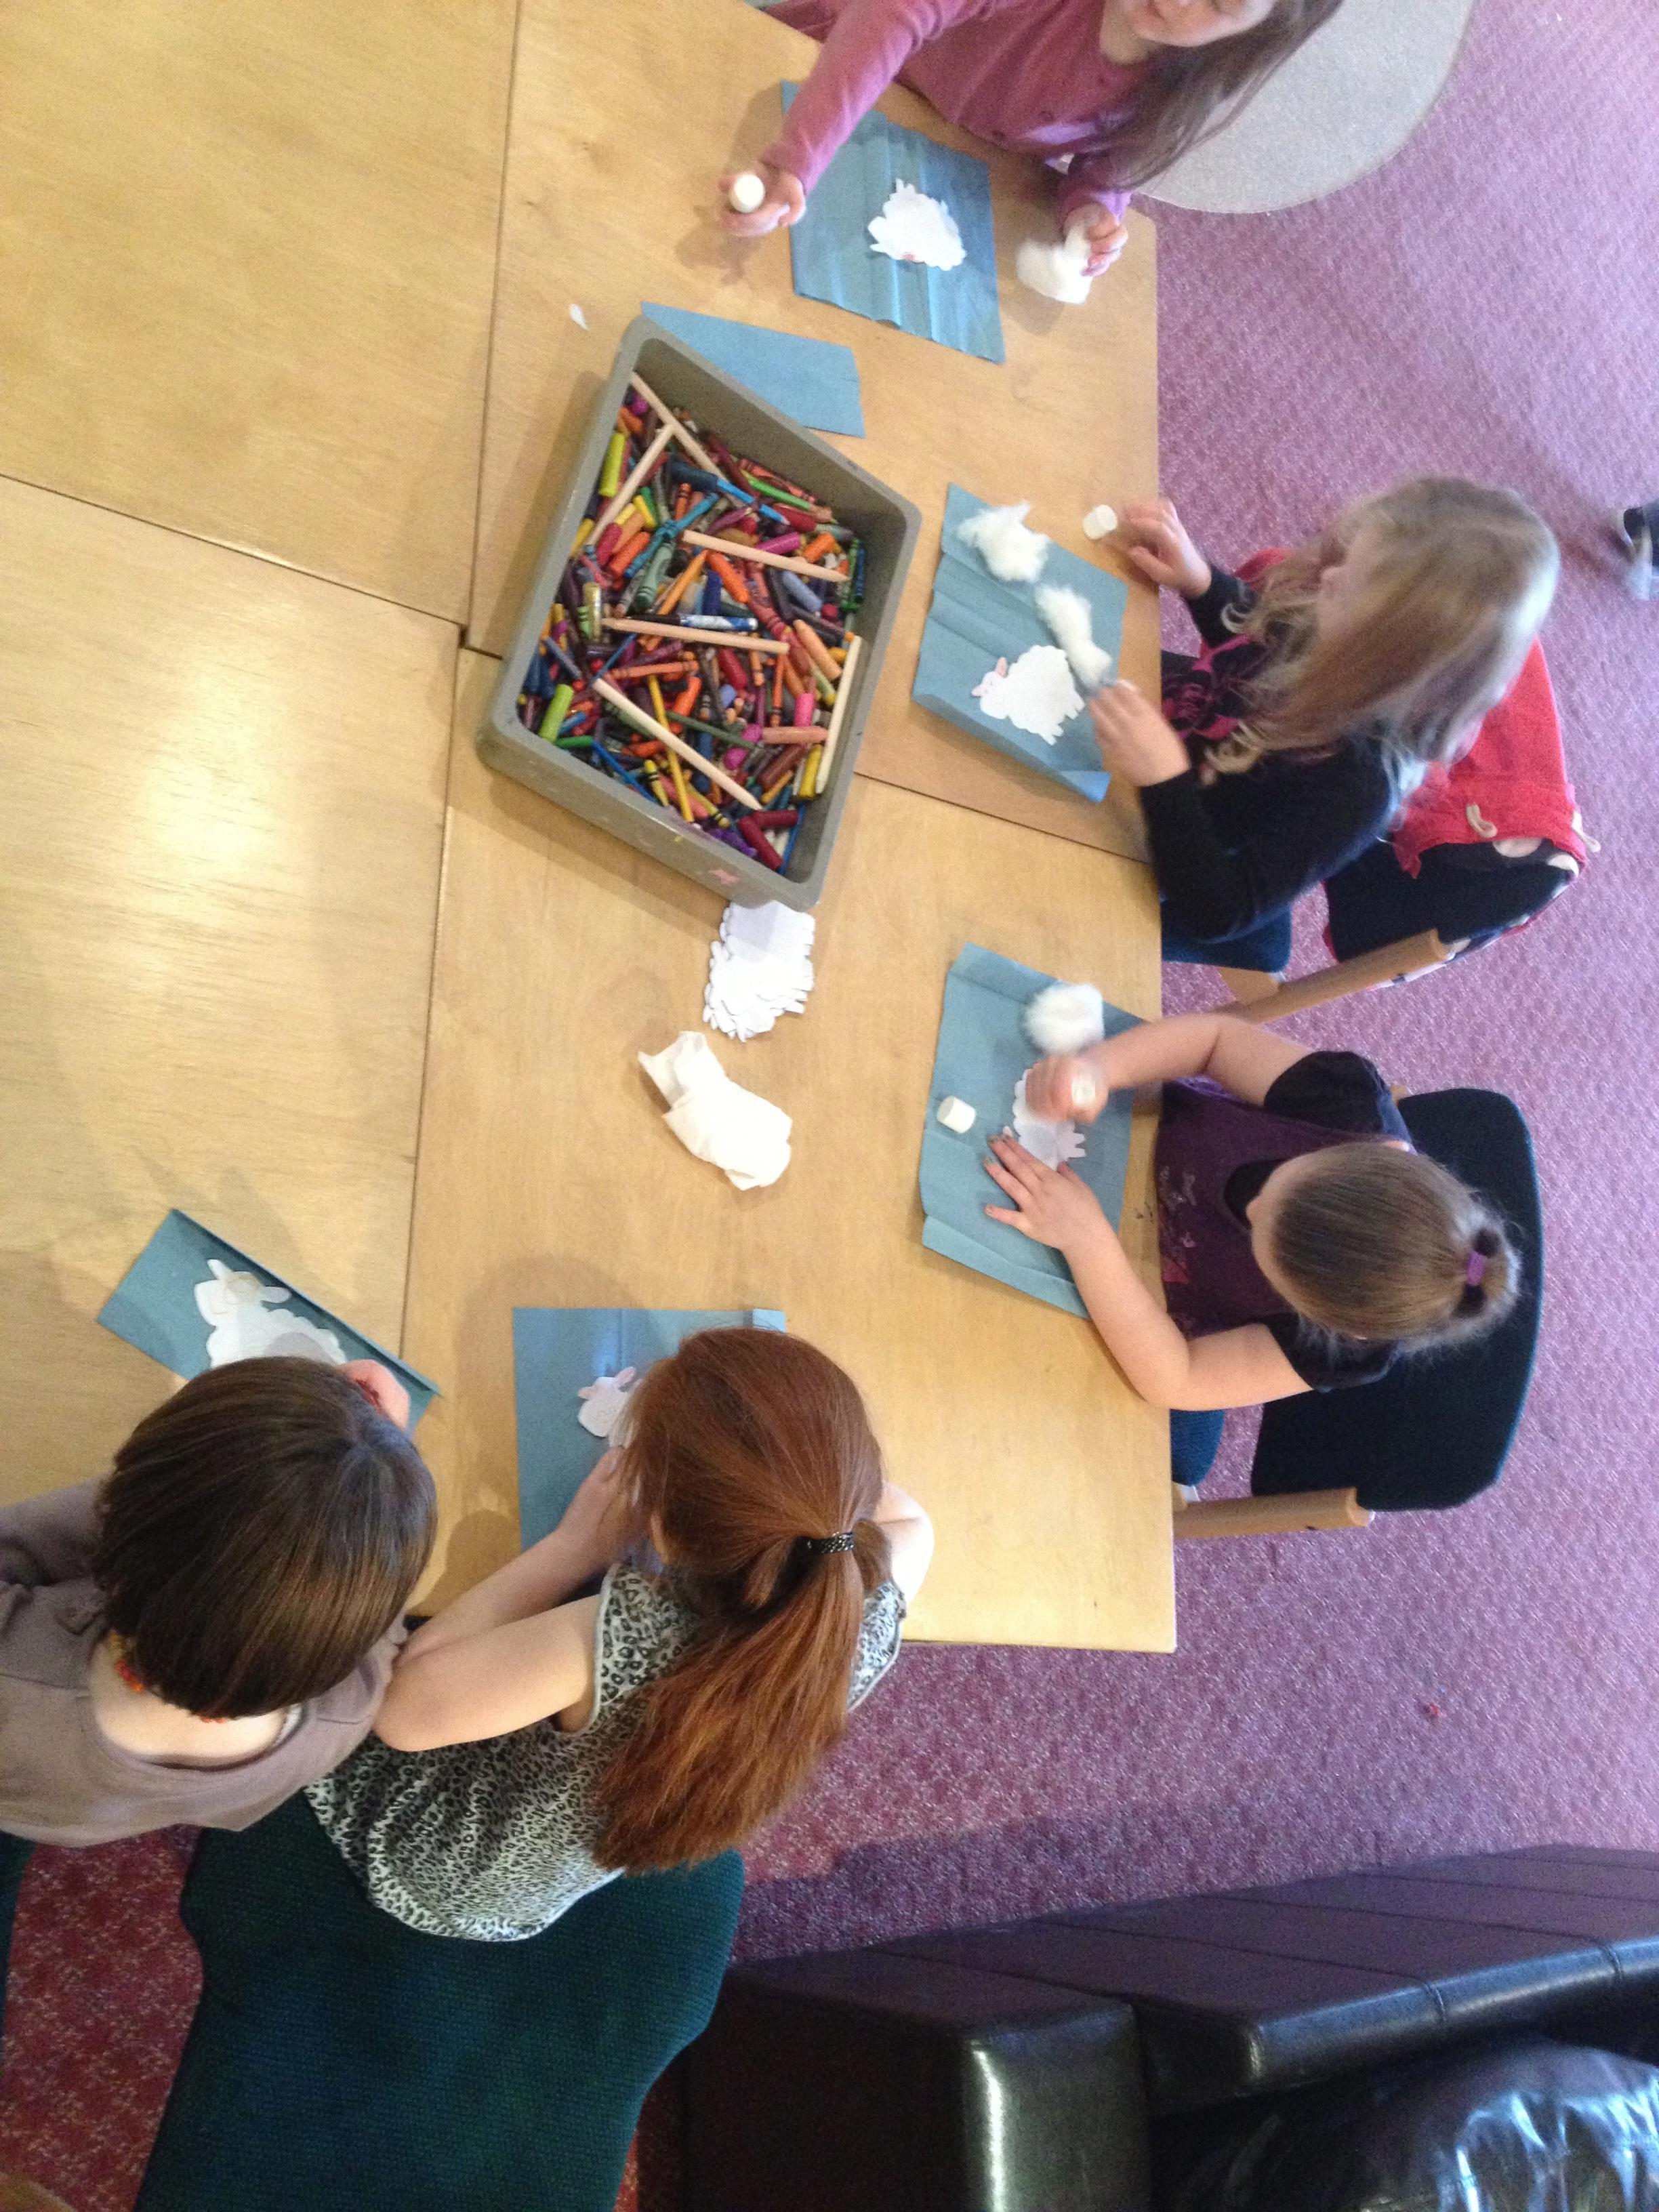 Children busy making their own little sheep at the crafts station.